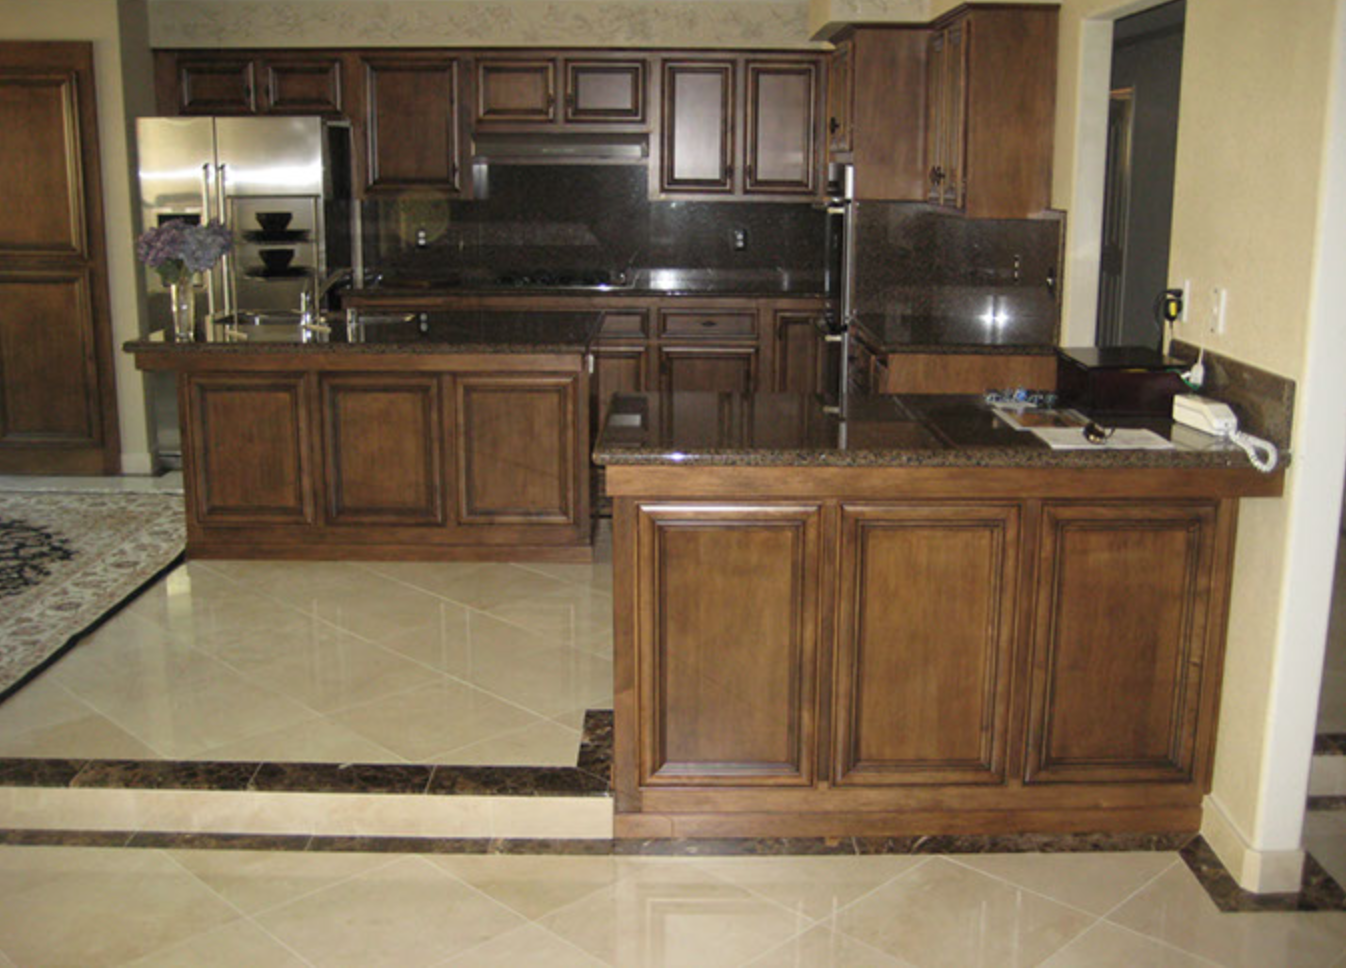 Fairfield Kitchen Remodel 1